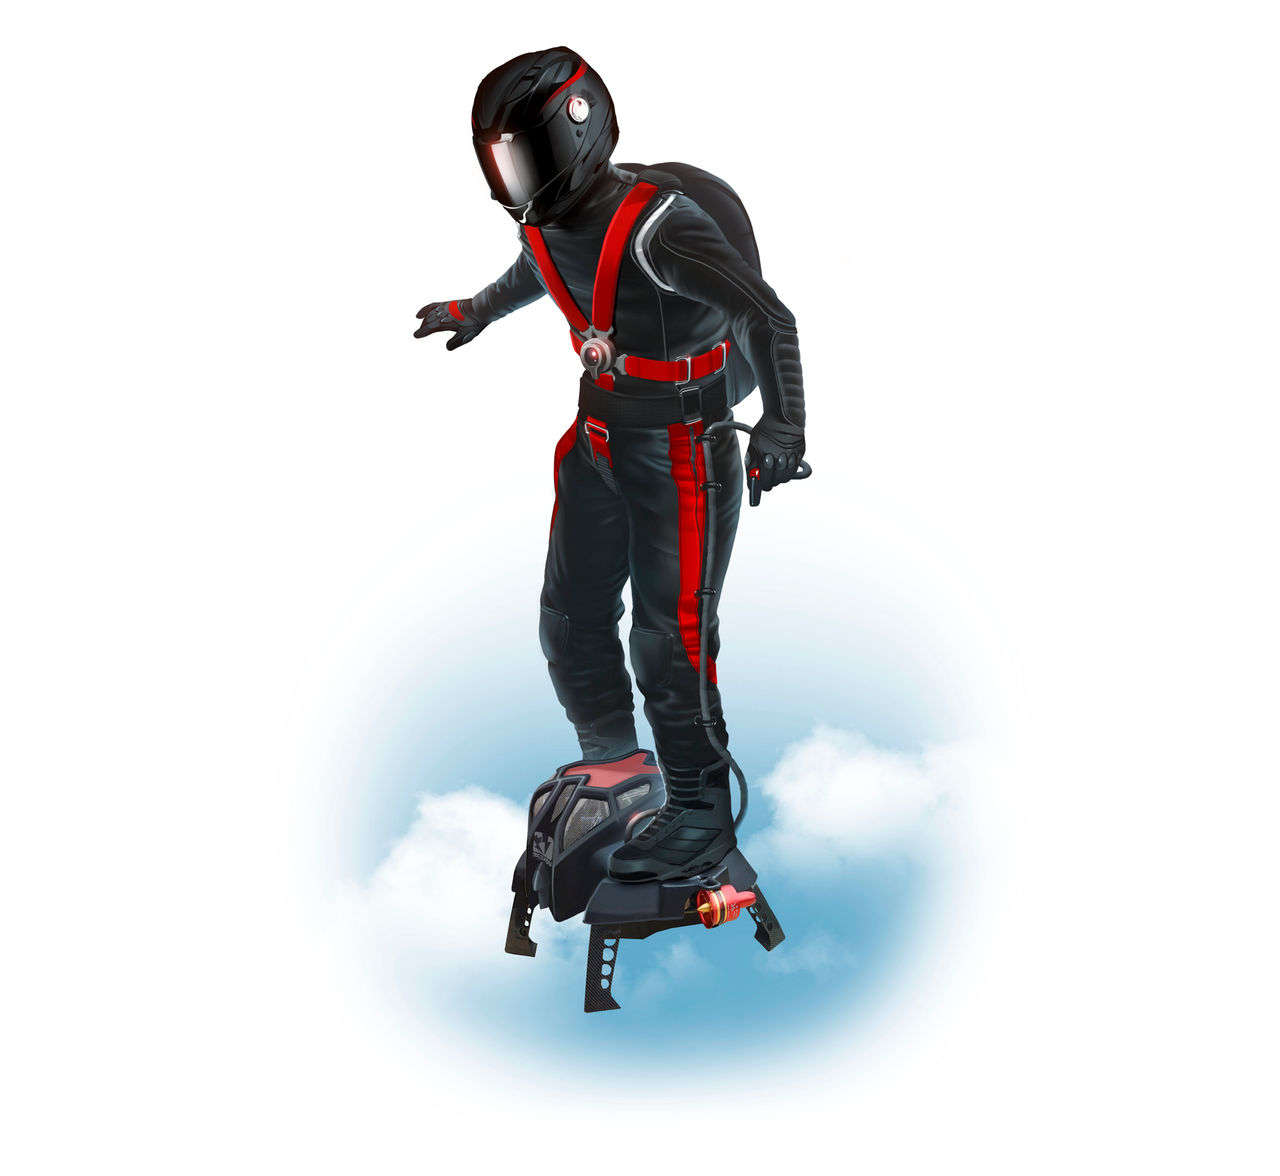 The New Invention Flyboard 174 Air Ocean Style